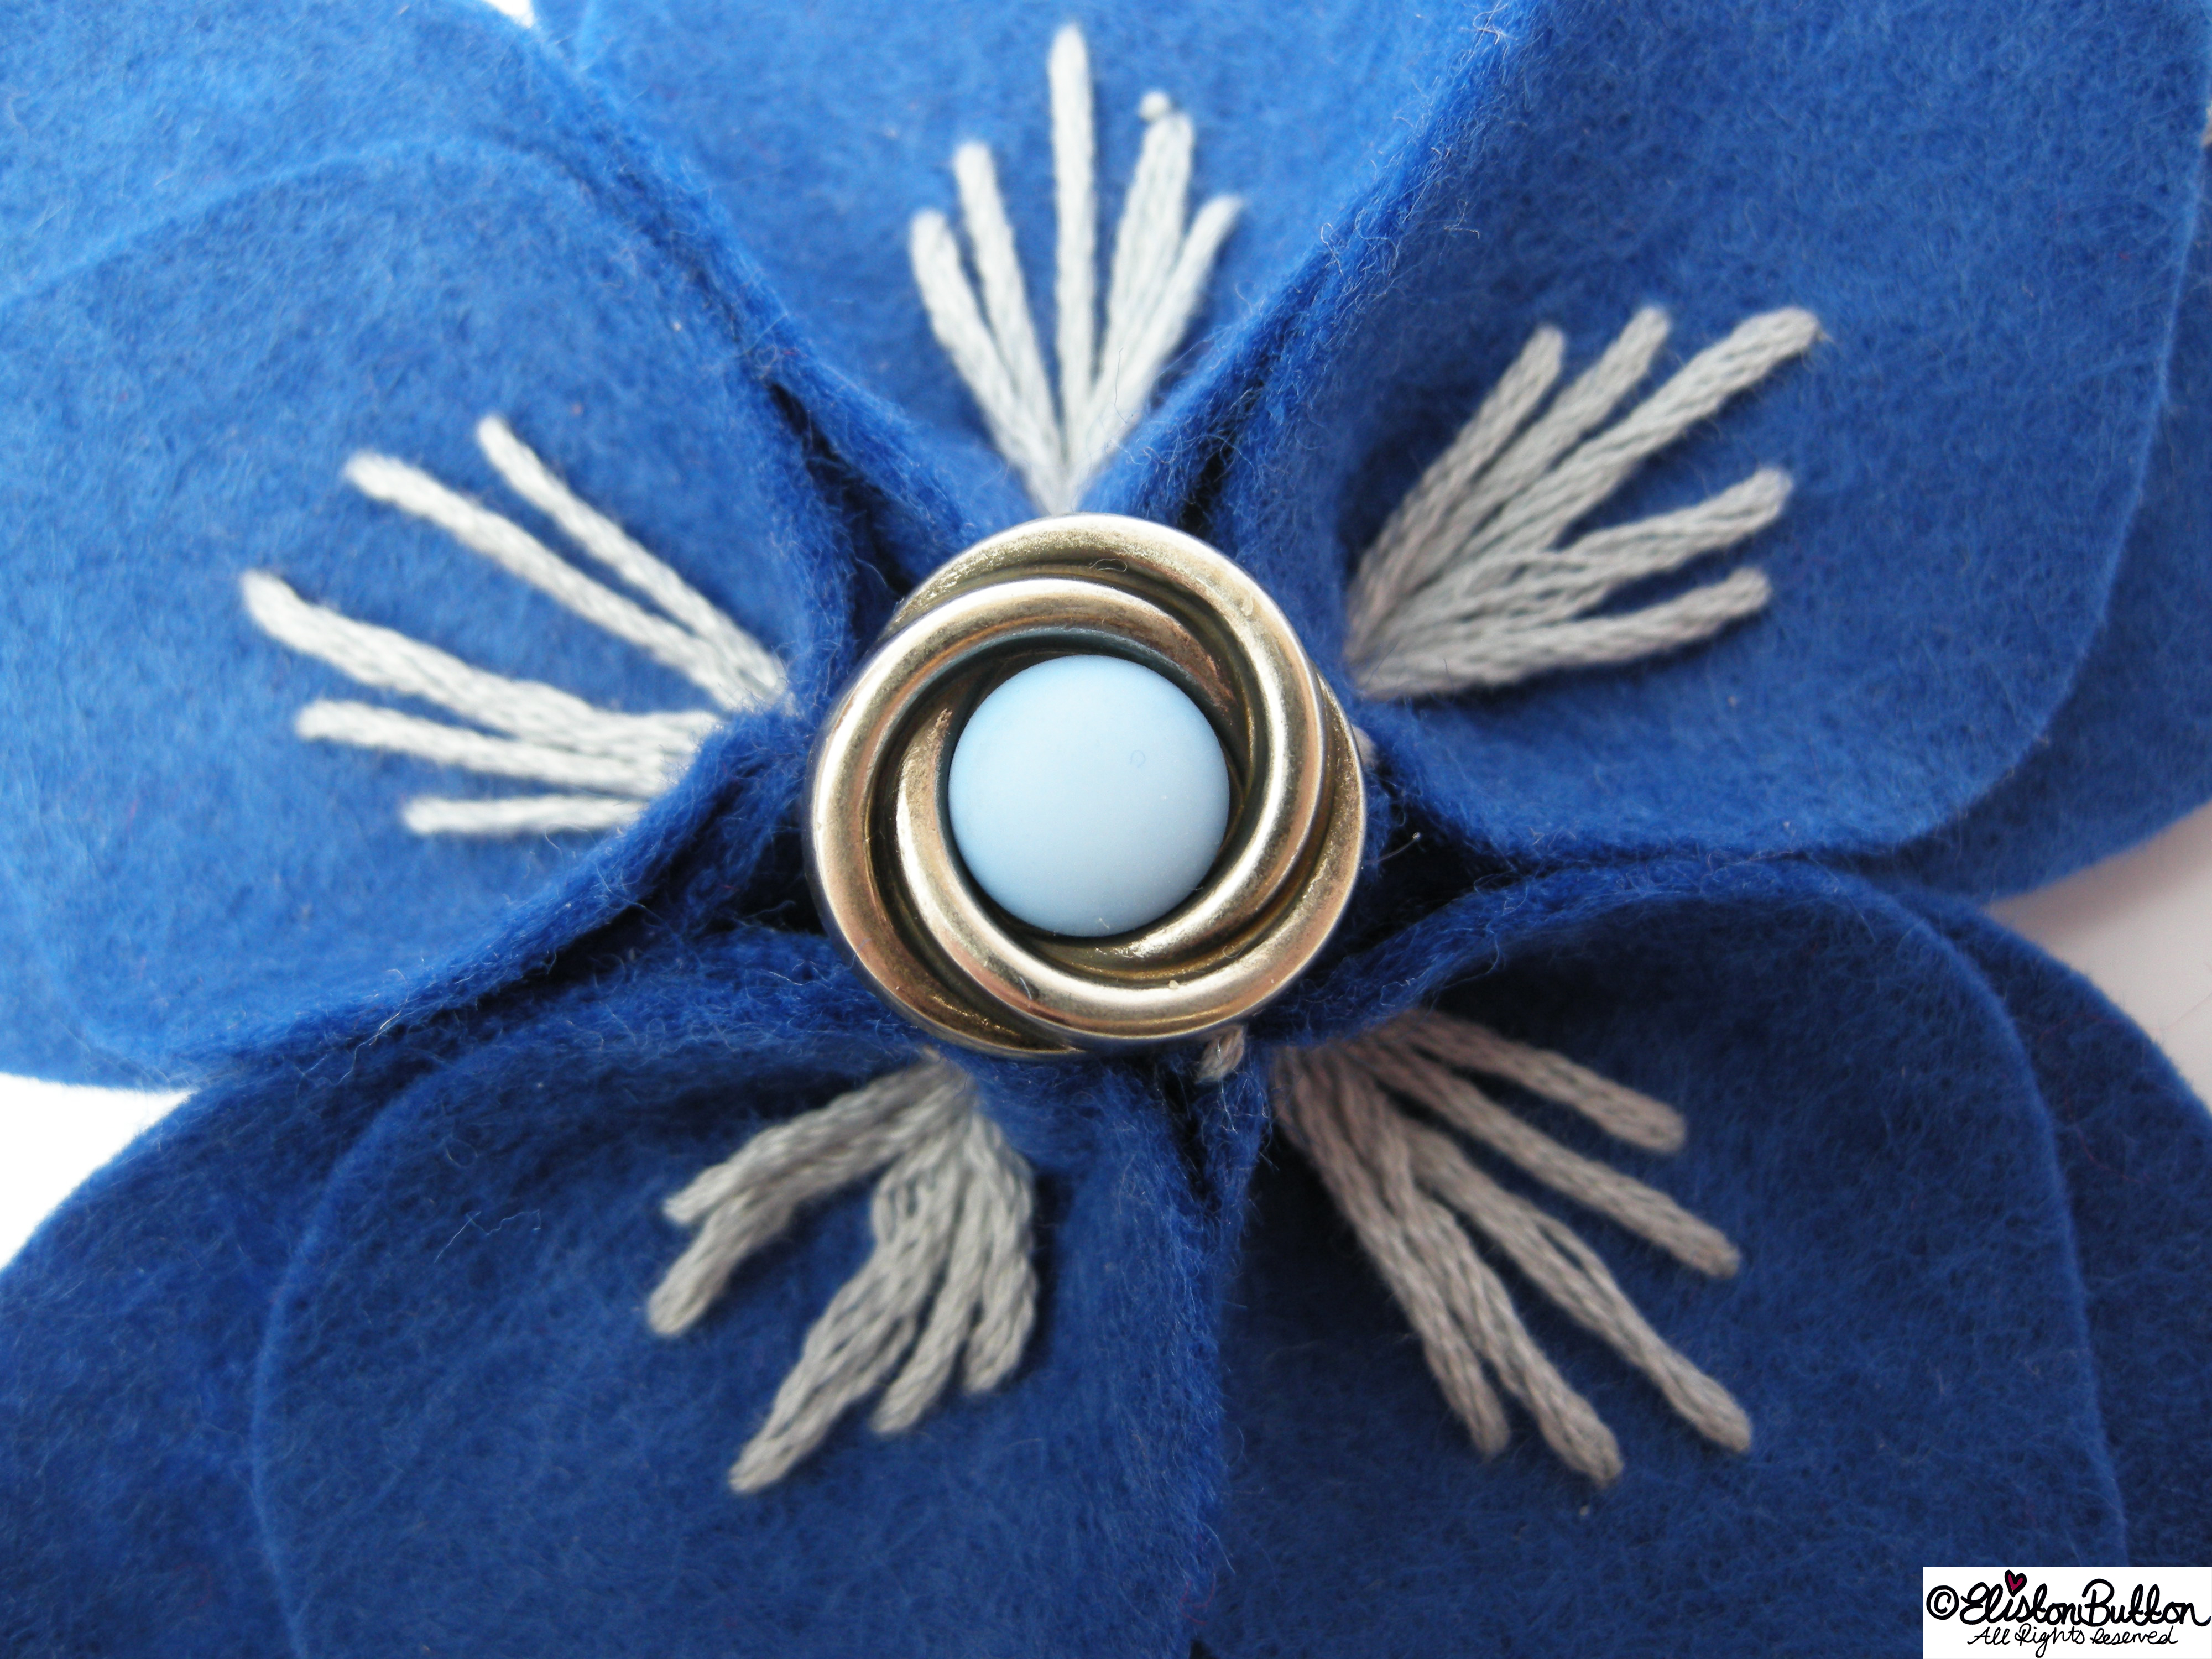 Out of the Blue Embroidered Felt Flower Brooch - Close Up - 27 Before 27 - Out of the Blue at www.elistonbutton.com - Eliston Button - That Crafty Kid – Art, Design, Craft & Adventure.